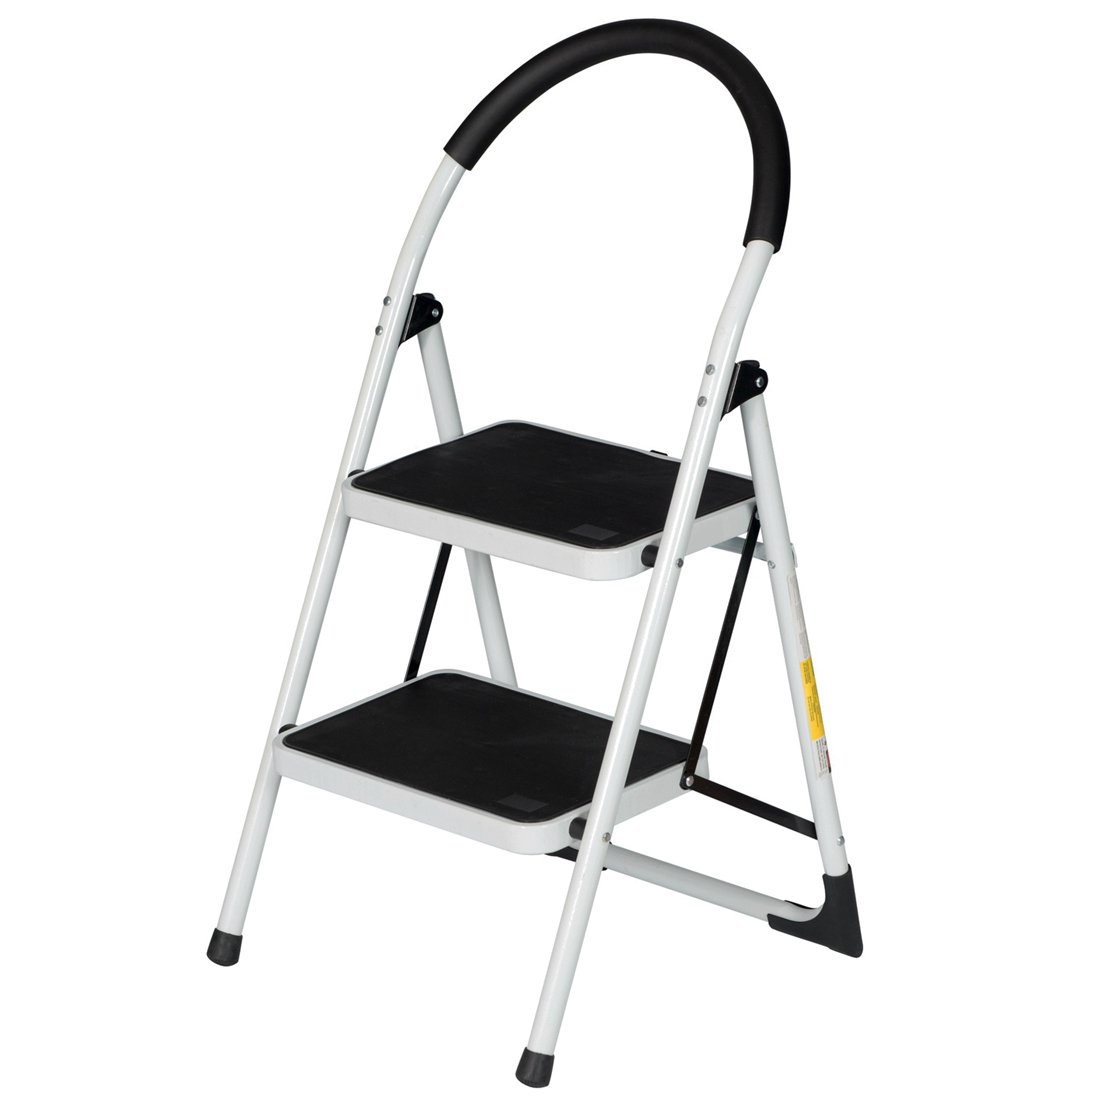 GOOD LIFE EN131 Folding 2 Step Ladder Home Depot Steel Step Ladders Lightweight 330 lb Capacity with Hand Grip Anti-slip and Wide Pedal HMI368